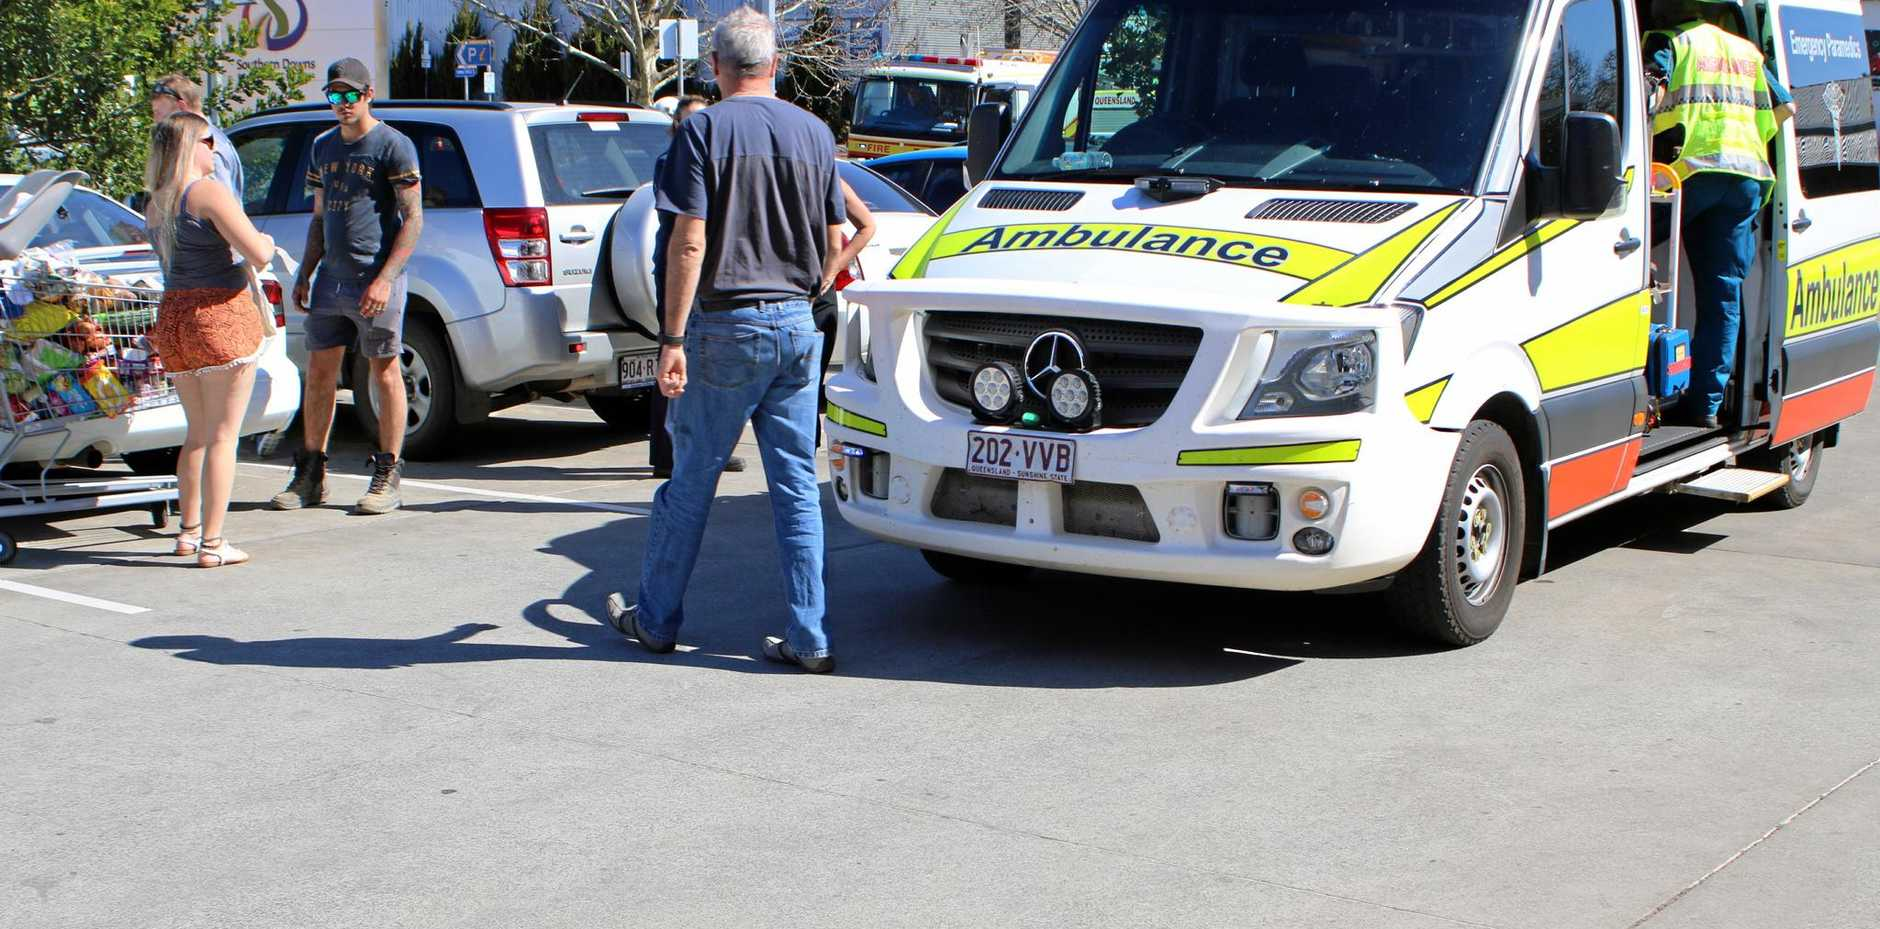 Paramedics treating a toddler reportedly hit by a car.